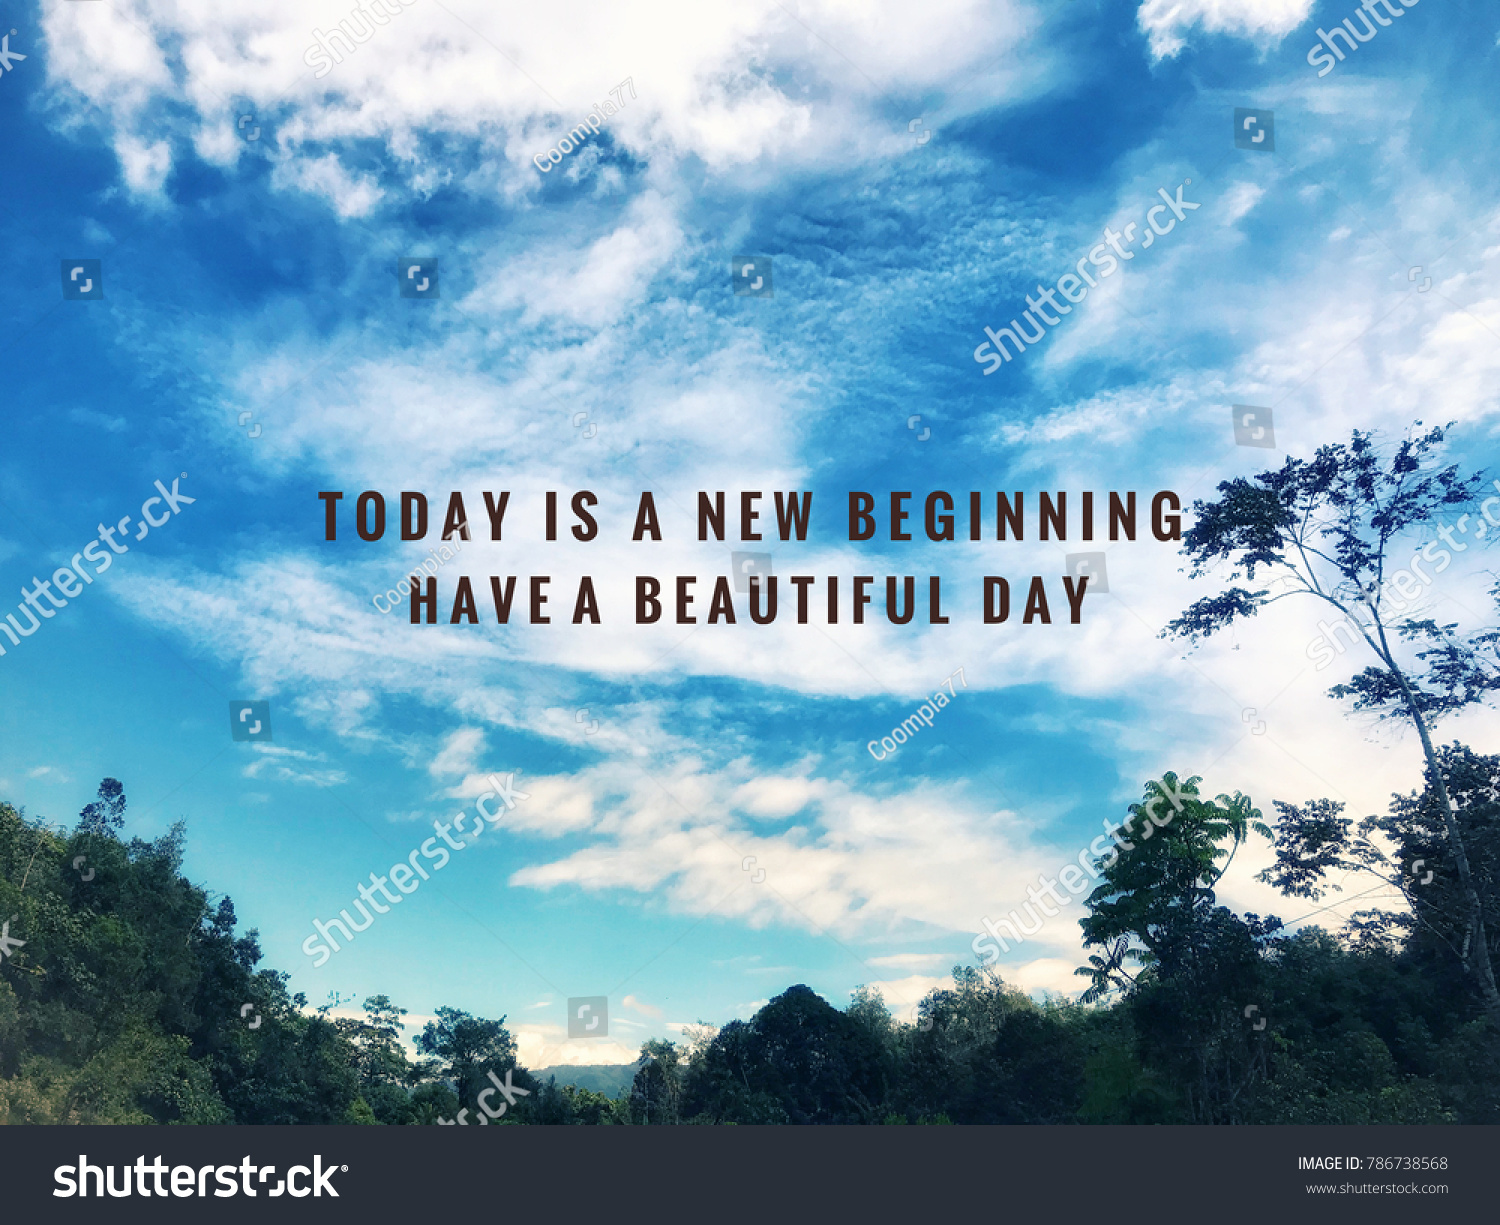 Motivational Inspirational Quotes Today New Beginning Stock Photo